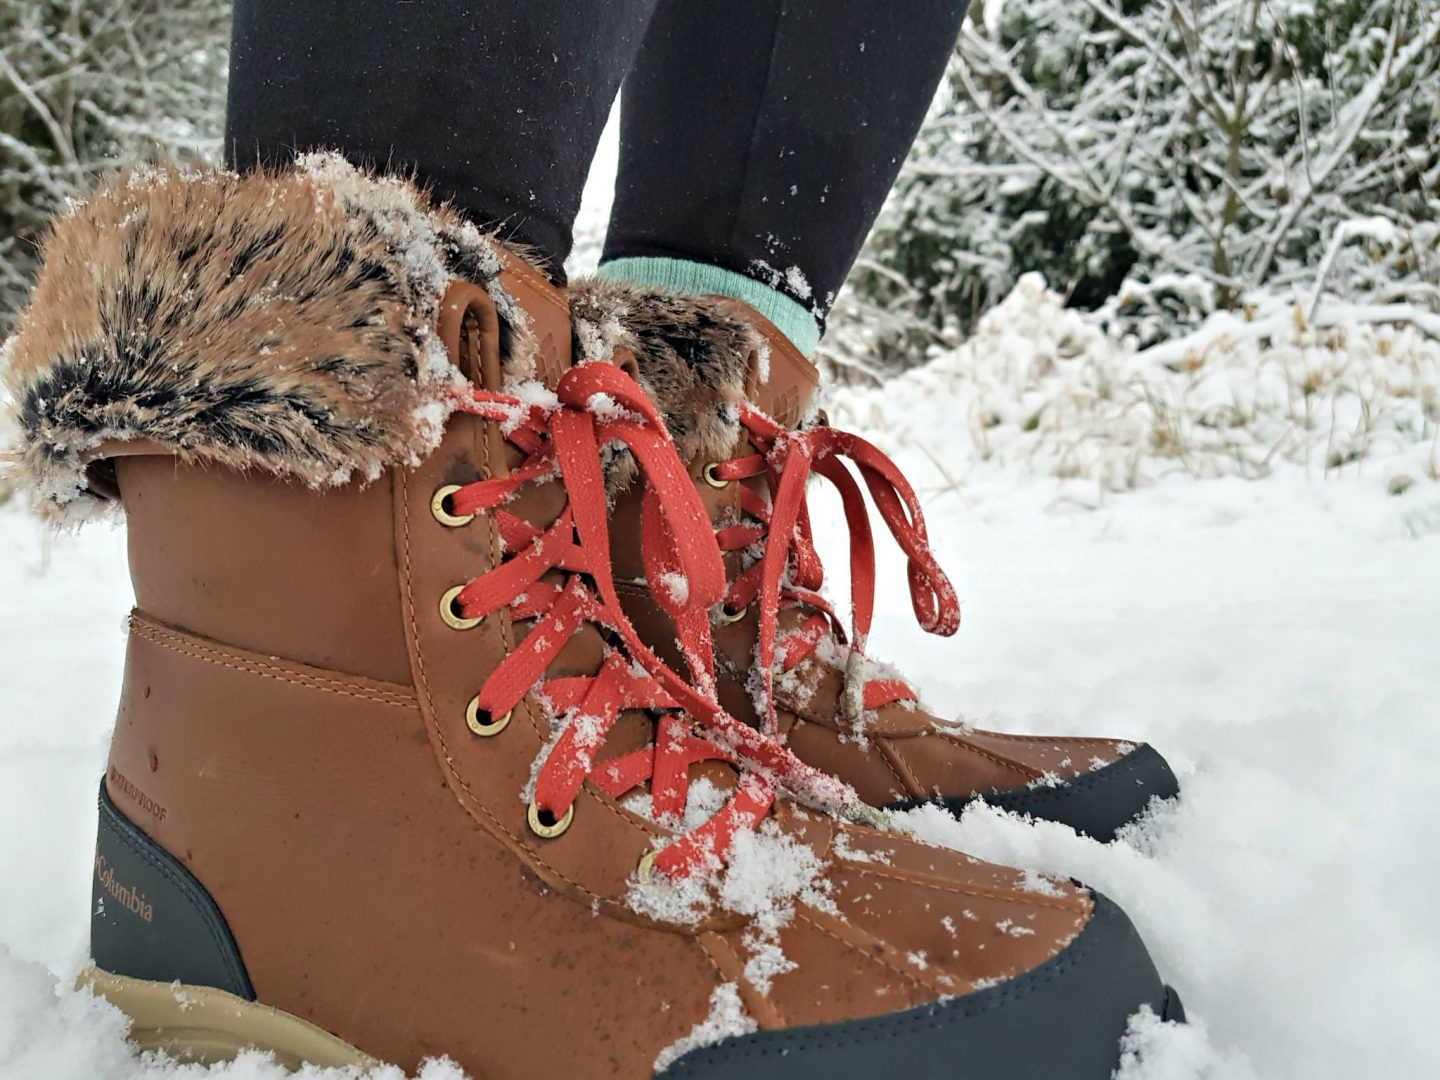 2009ef39bc I have always struggled to try to find a decent pair of snow boots, ones  that ideally I can wear around a ski resort. I find the idea of slipping  over more ...